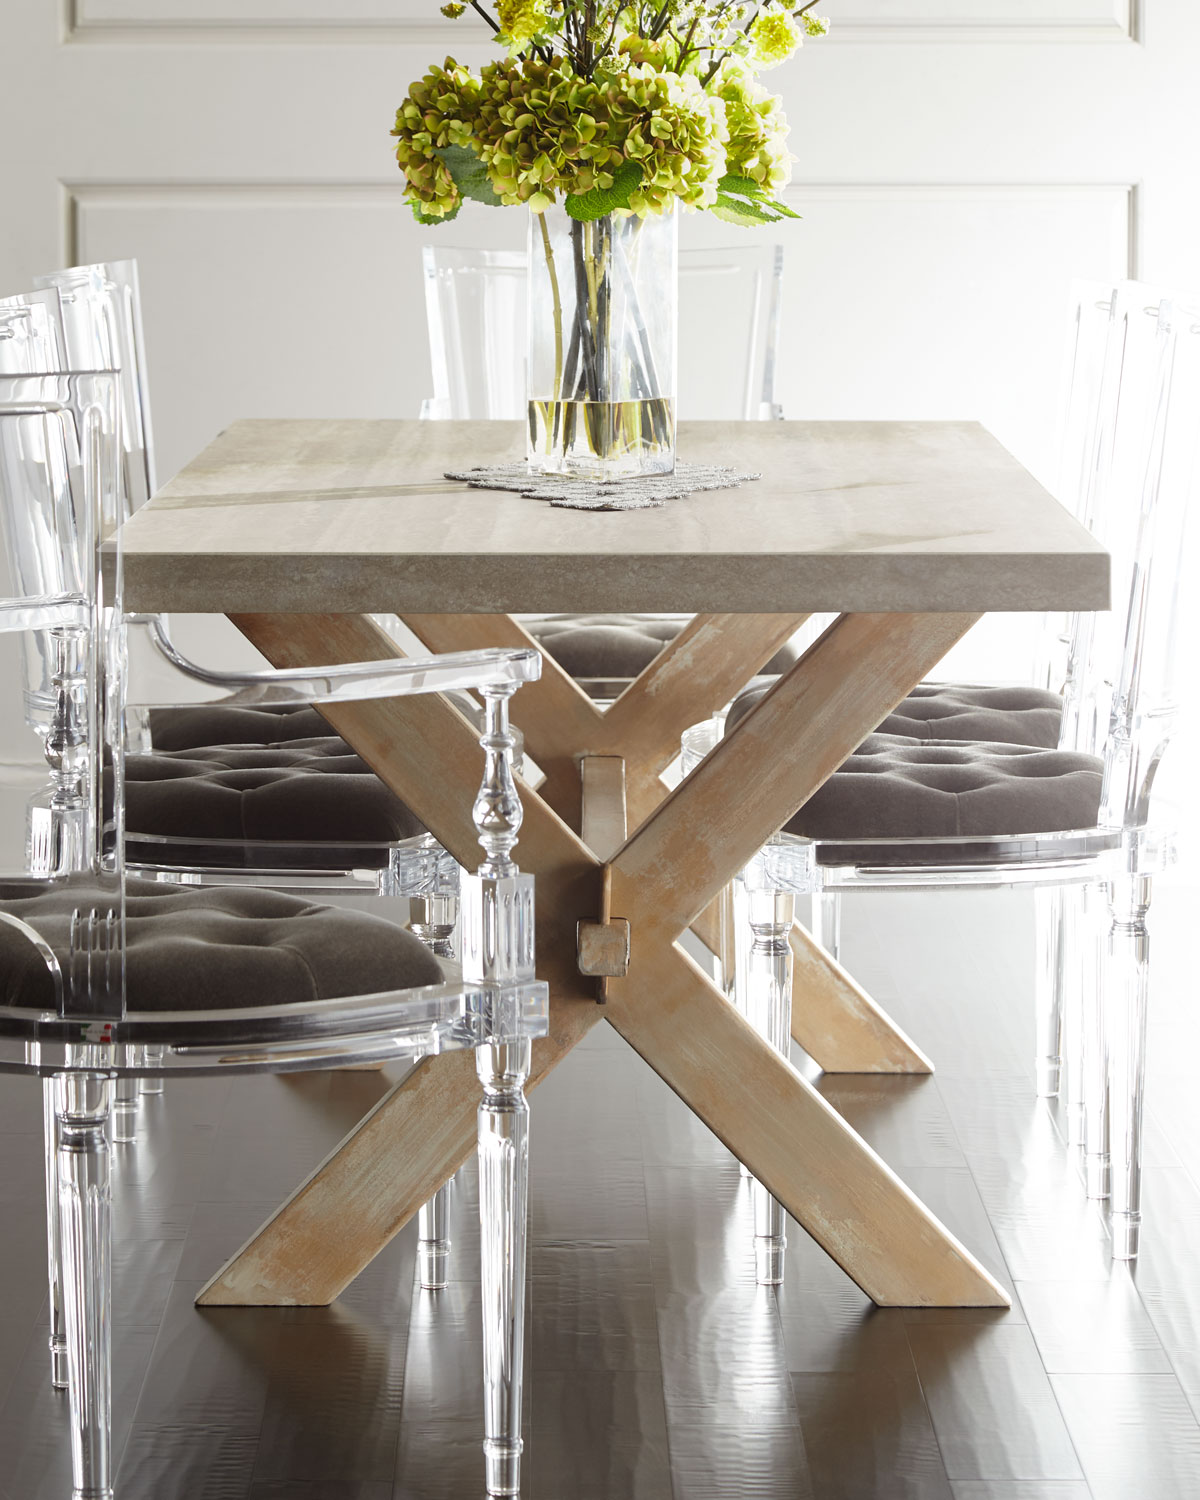 Bacca StoneTop Dining Table Neiman Marcus - Stone top rectangular dining table